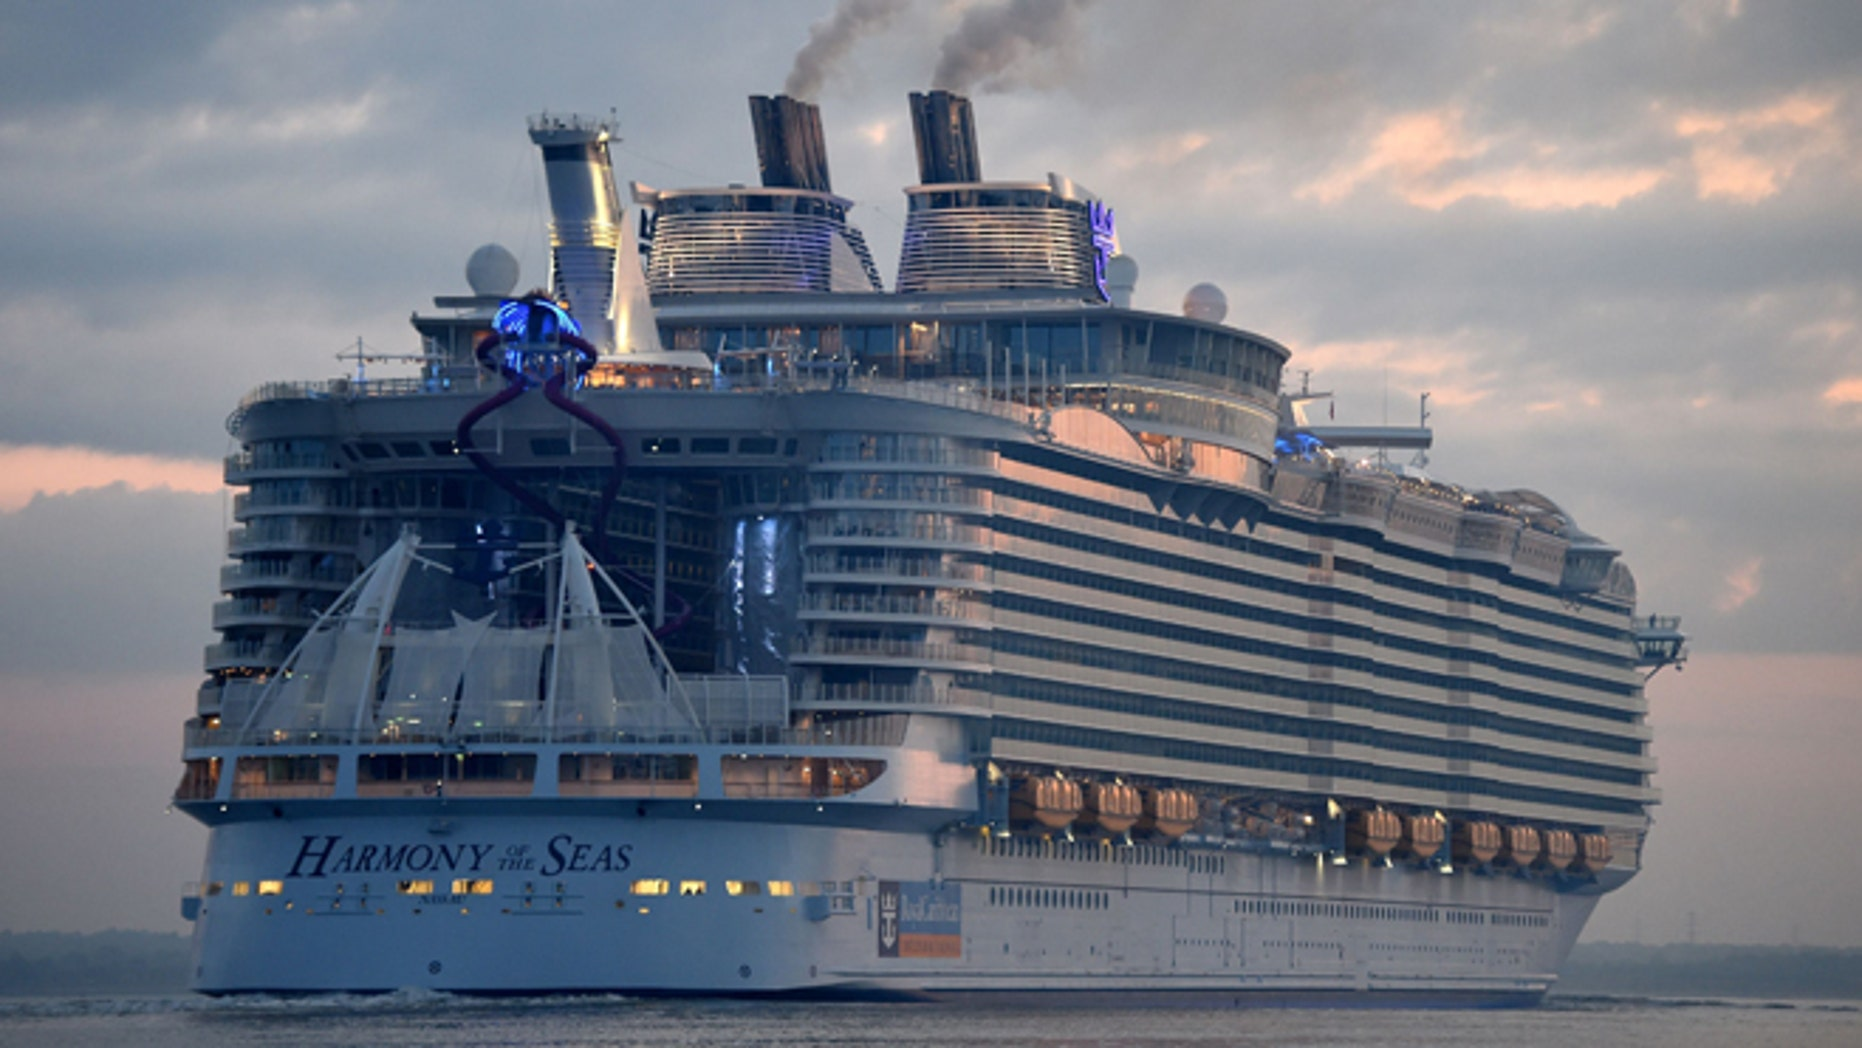 The world's largest passenger ship, Harmony of the Seas, owned by Royal Caribbean, docks on arrival in Southampton, England, Tuesday May 17, 2016, ahead of her maiden cruise. After 32-months being fitted out in a French shipyard the 16-deck Harmony of the Seas will set out on its inaugural voyage on May 22 bound for Barcelona, Spain.  (Andrew Matthews/PA via AP) UNITED KINGDOM OUT - NO SALES - NO ARCHIVES